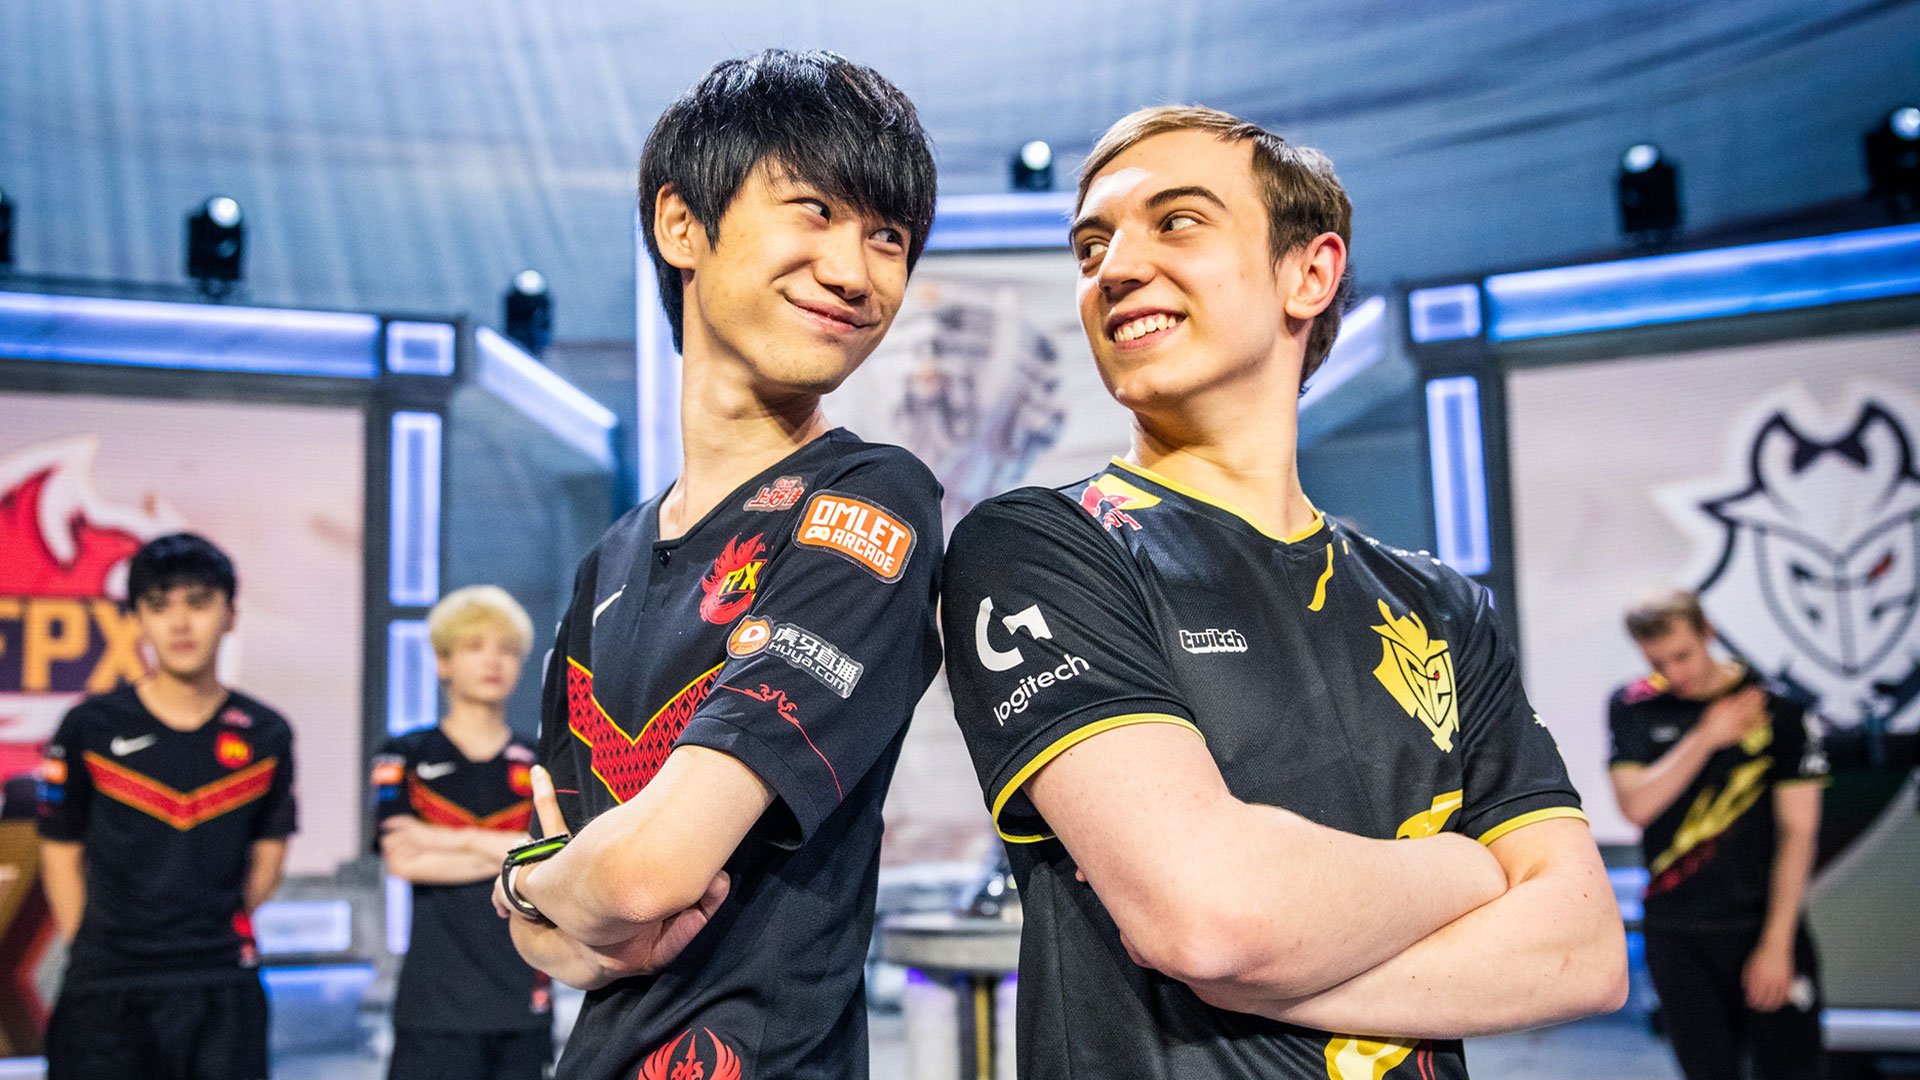 A Team Into 10 thoughts going into finals – league of legends